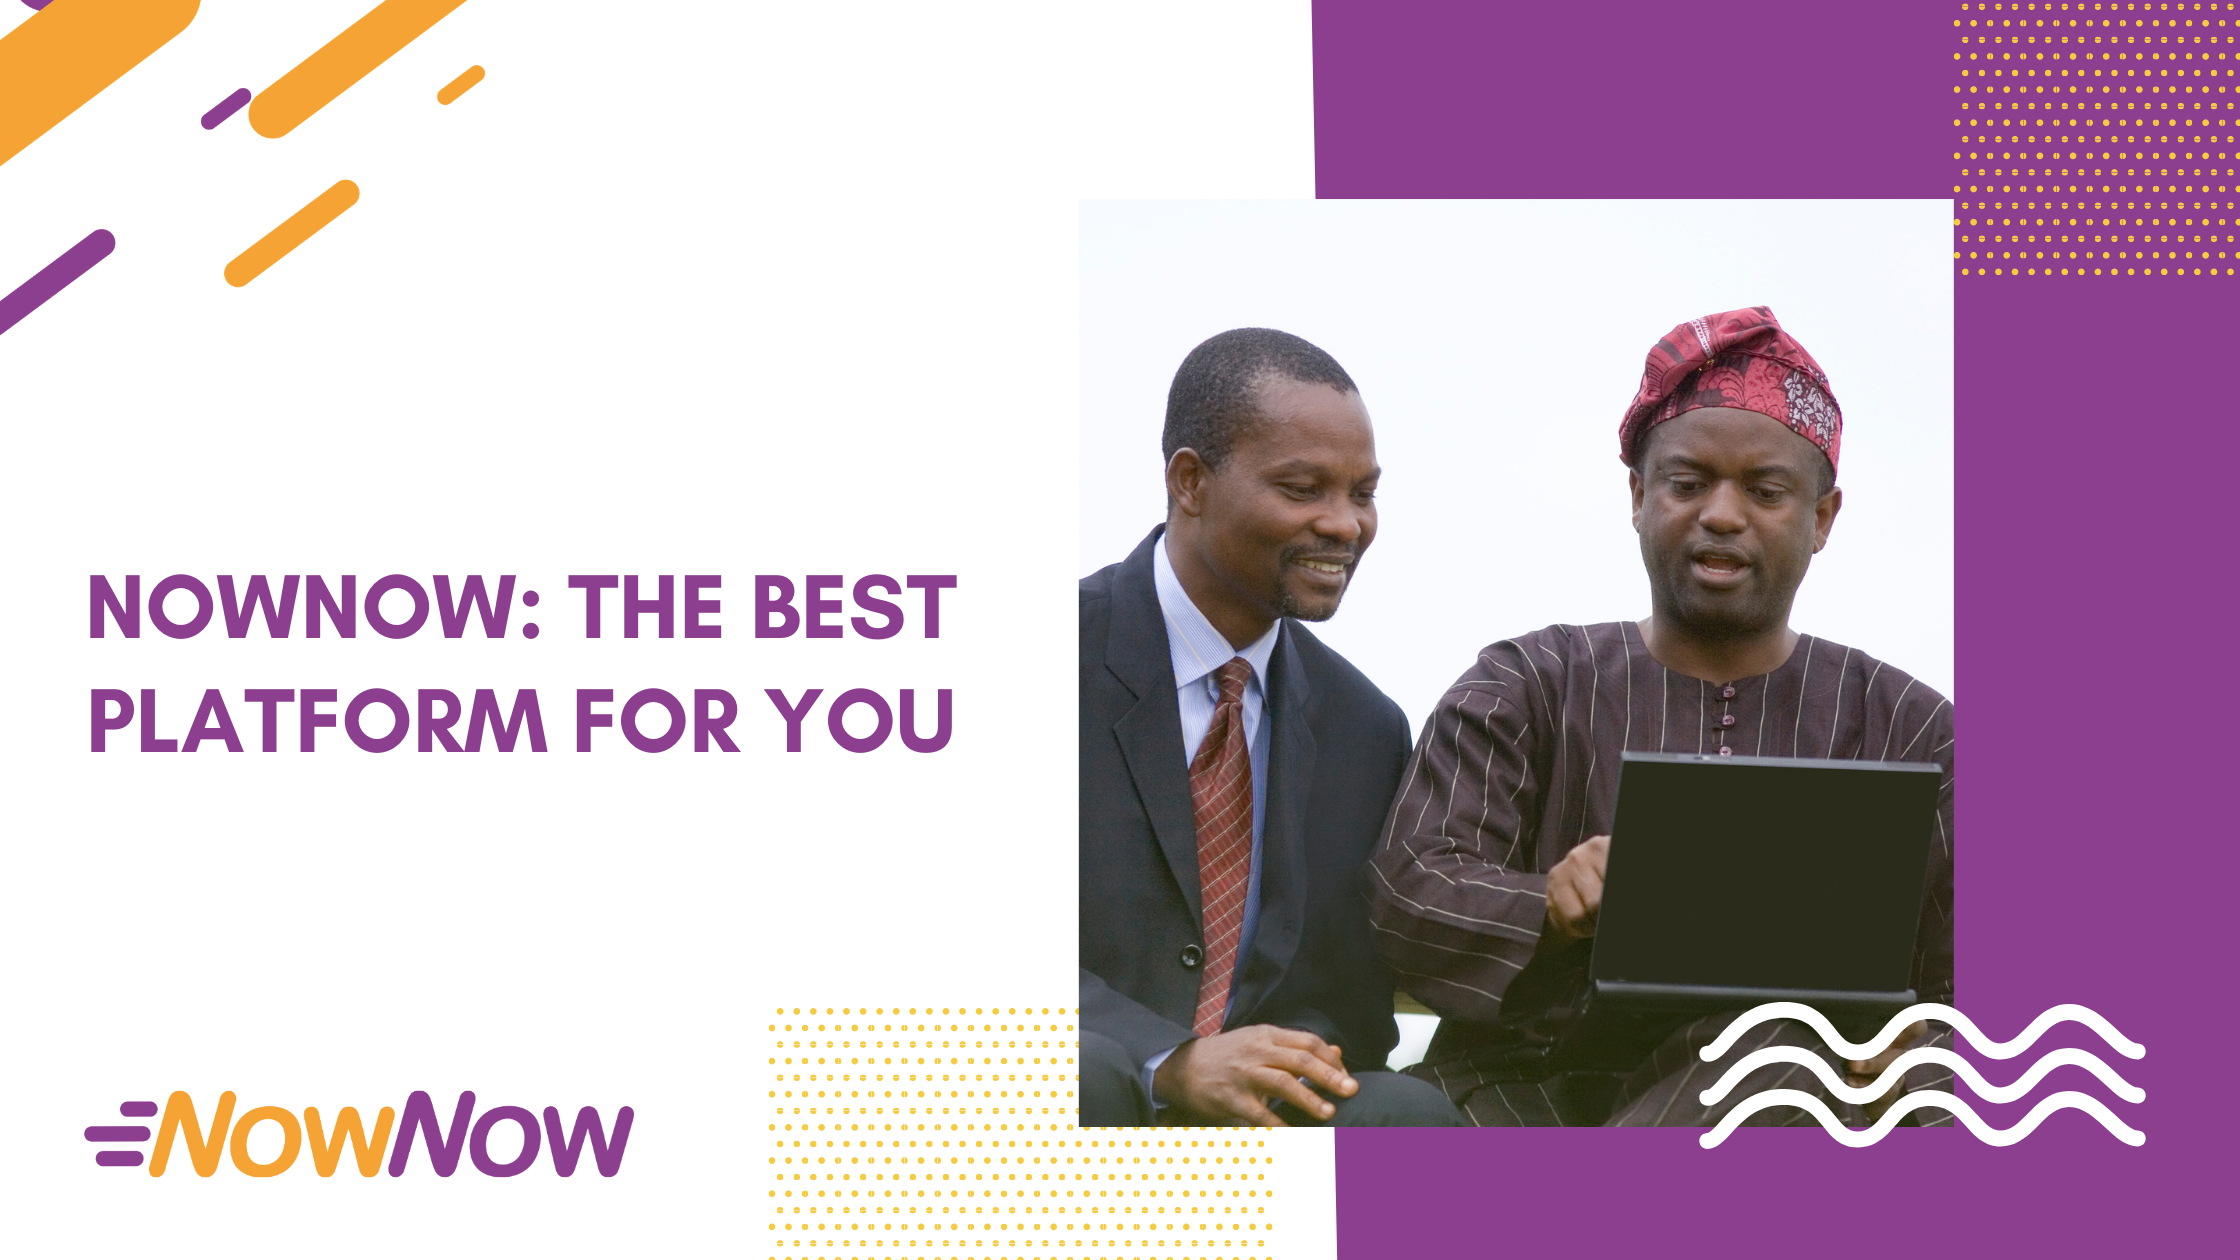 5 reasons why NowNow is the best platform for you